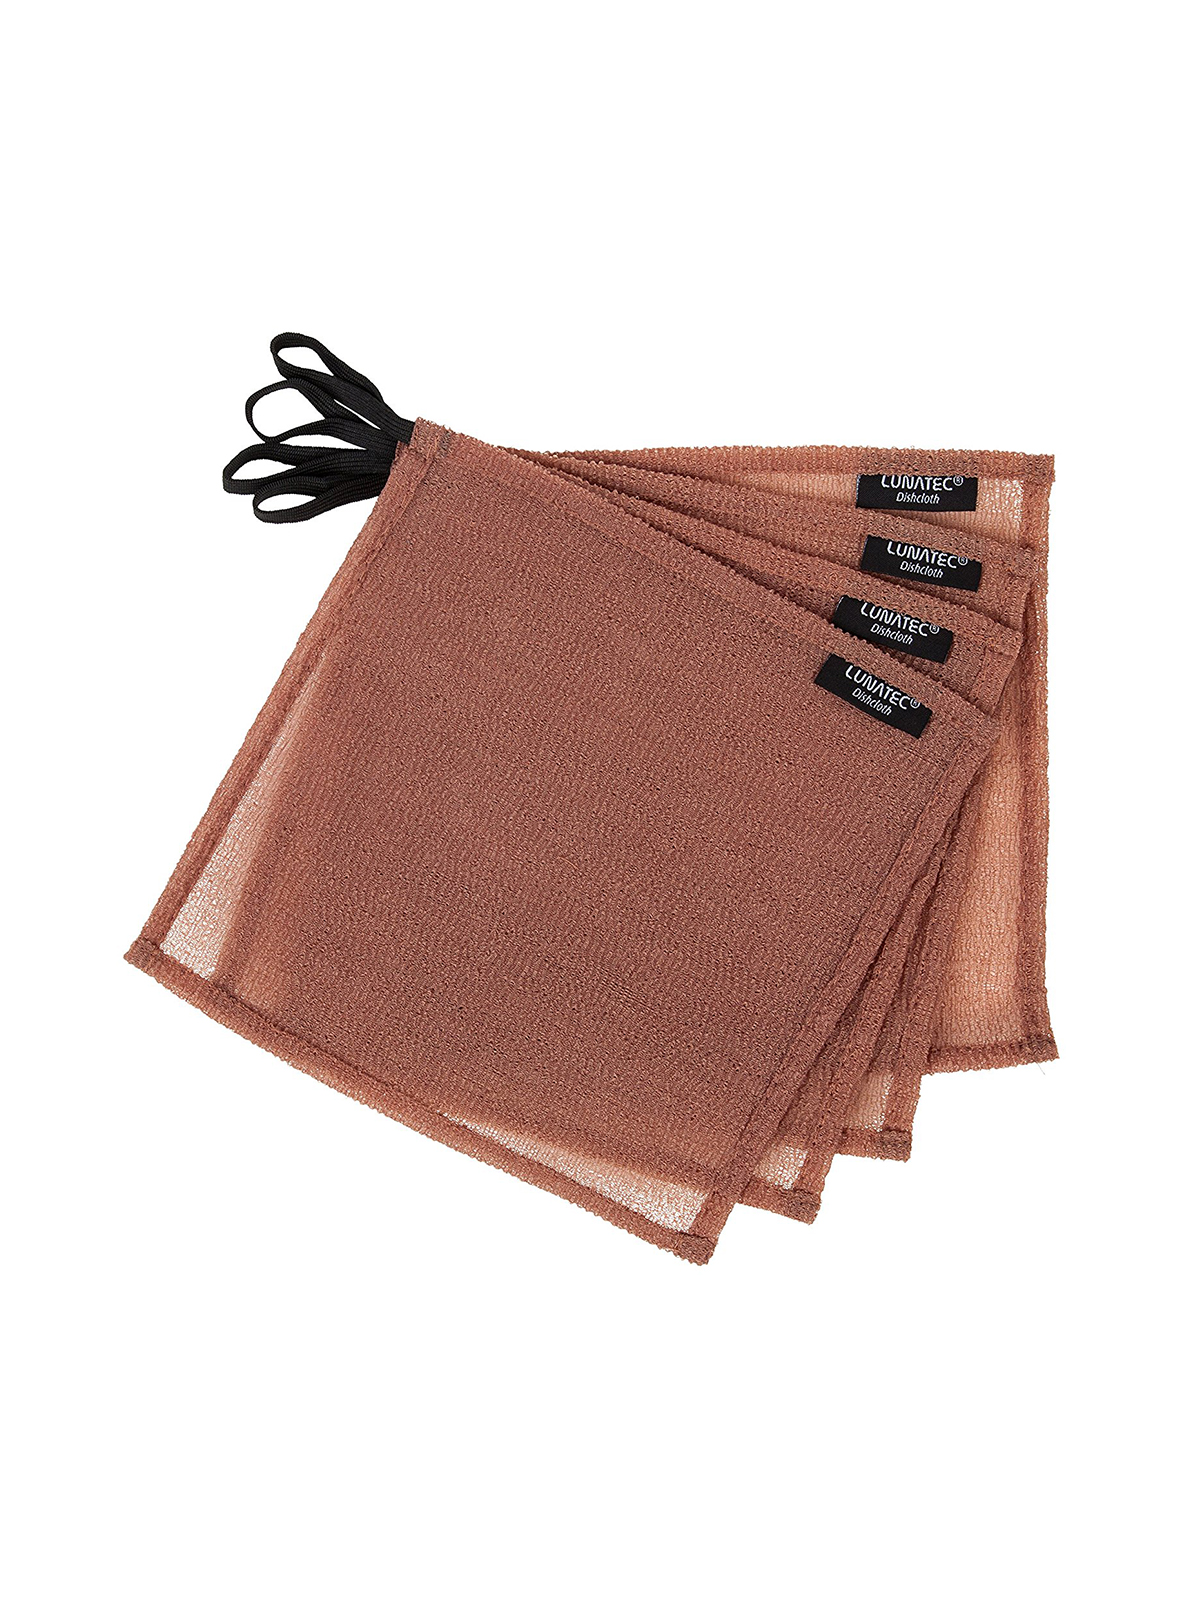 Cleaning tools, thin brown dishcloths